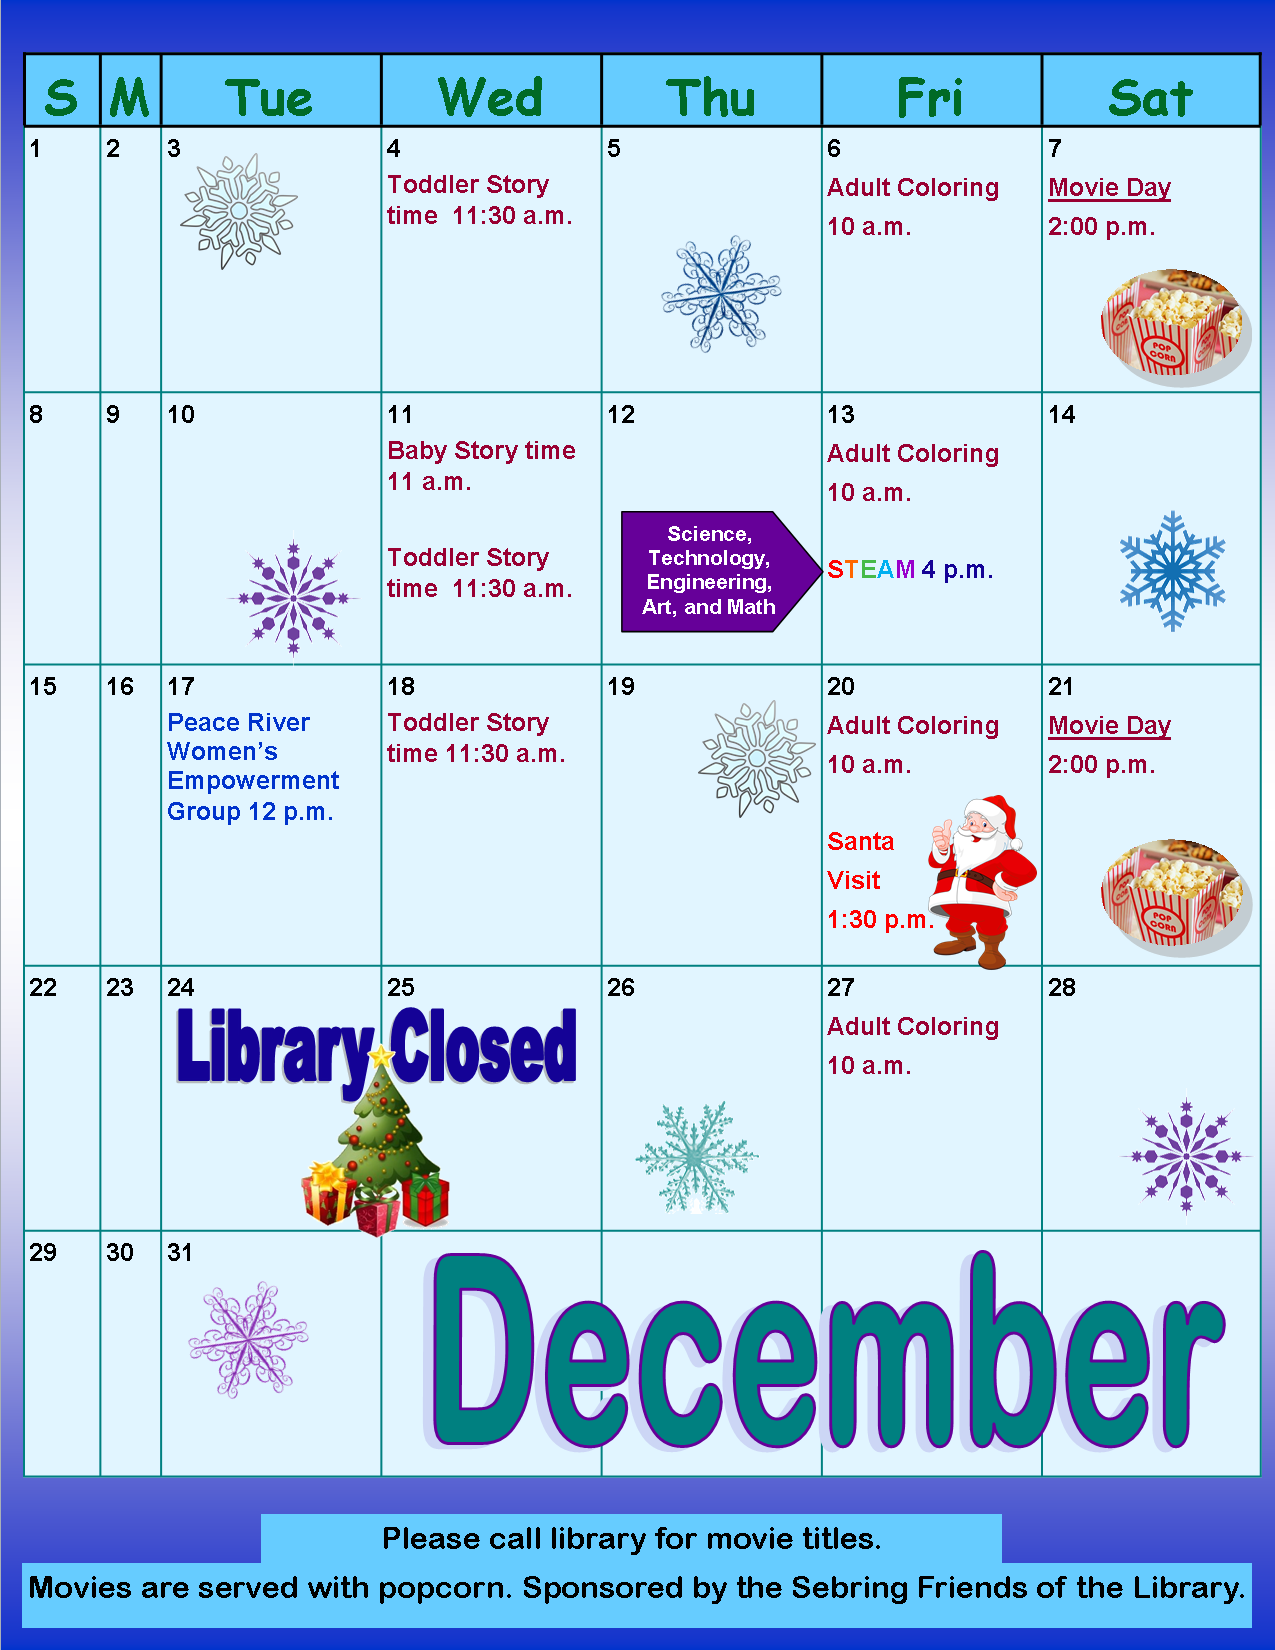 This month at the Sebring Public Library:       Toddler storytime Wednesday mornings at 11:30 a.m except for Christmas Day.     Baby storytime will be on Wednesday, December 11, at 11 a.m.     Adult coloring group every Friday at 10 a.m..      S.T.E.A.M night is Friday, December 13, at 4:00 p.m..      Family movie days are December 7 and 21, at 2:00 p.m..      At Noon on Tuesday, December 17, Peace River Center Victim Services' is hosting a Women's Empowerment Group; all females 18 years and older are welcome.     Santa will be making an appearance on Friday, December 20 at 1:30 p.m., everyone is welcome to get a free picture taken with Santa!